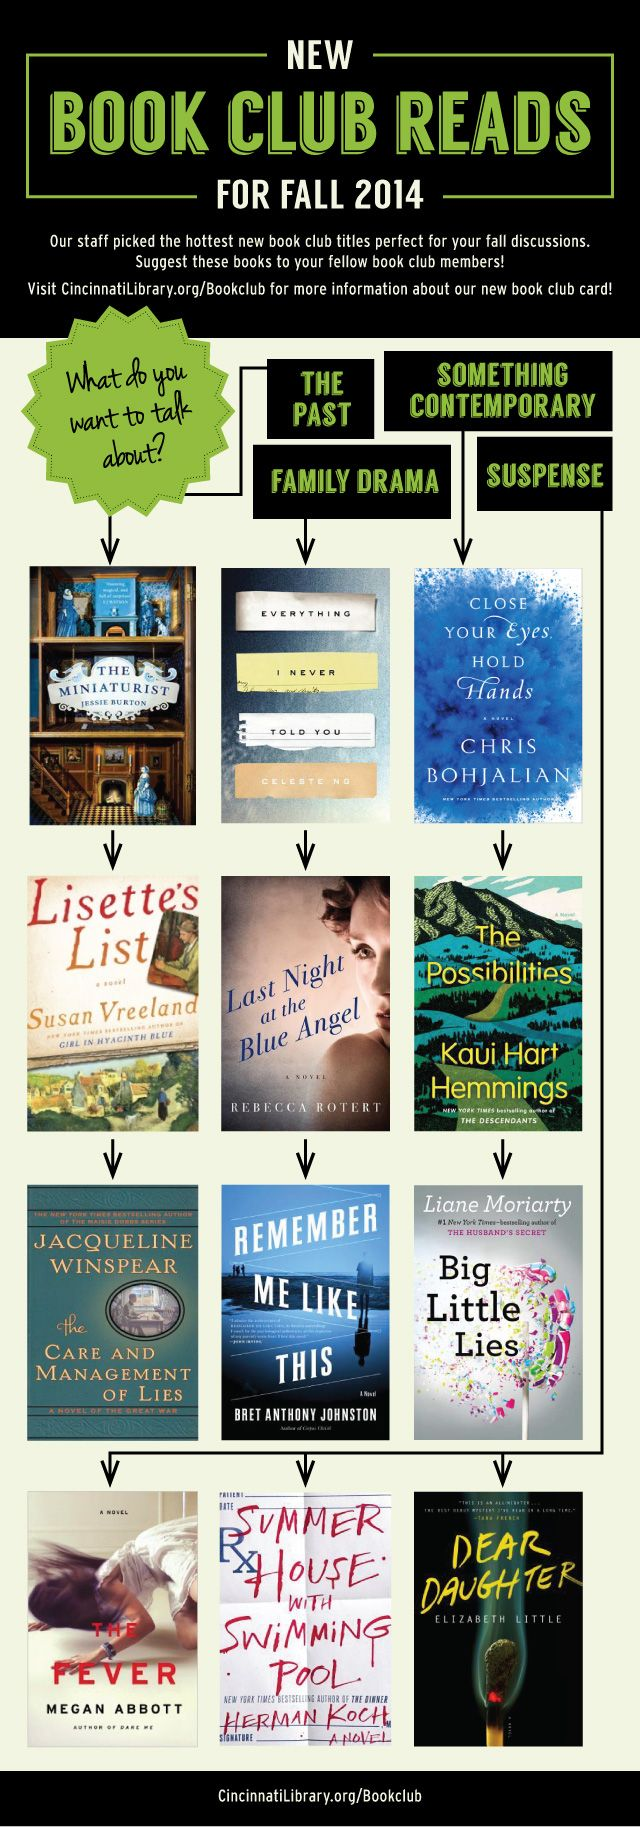 Book Club reads for Fall 2014